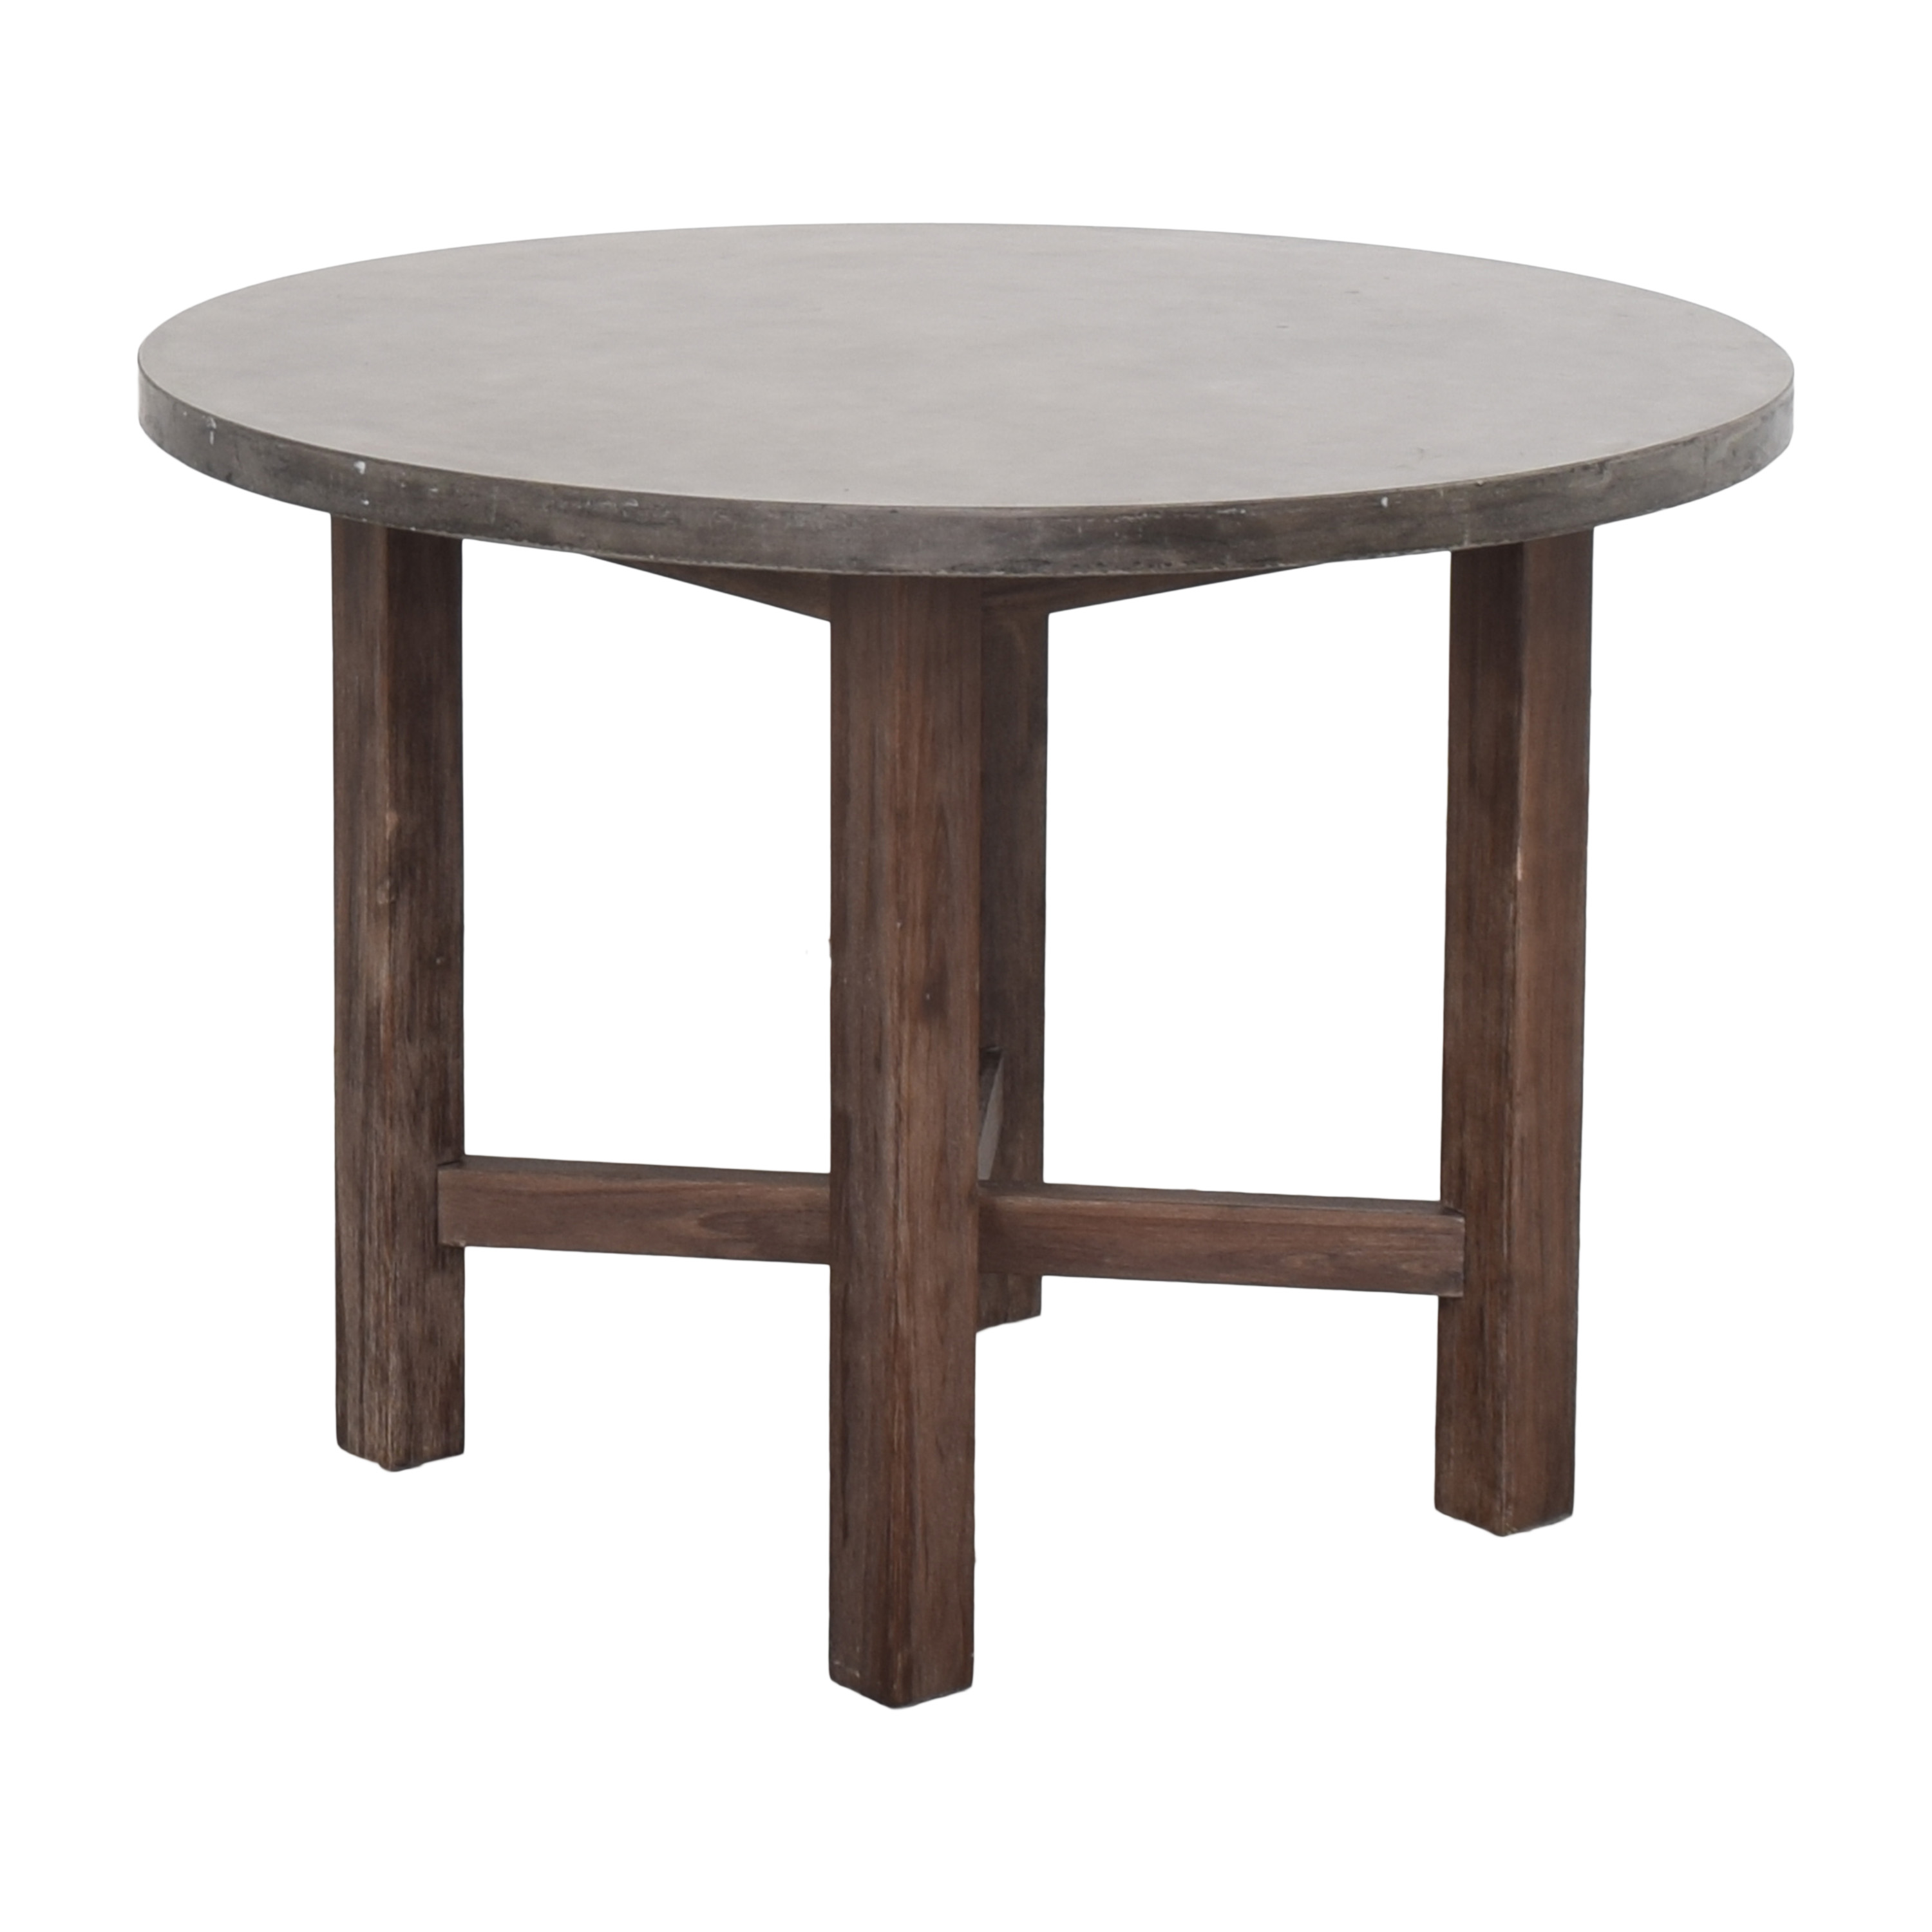 Round Dining Table used